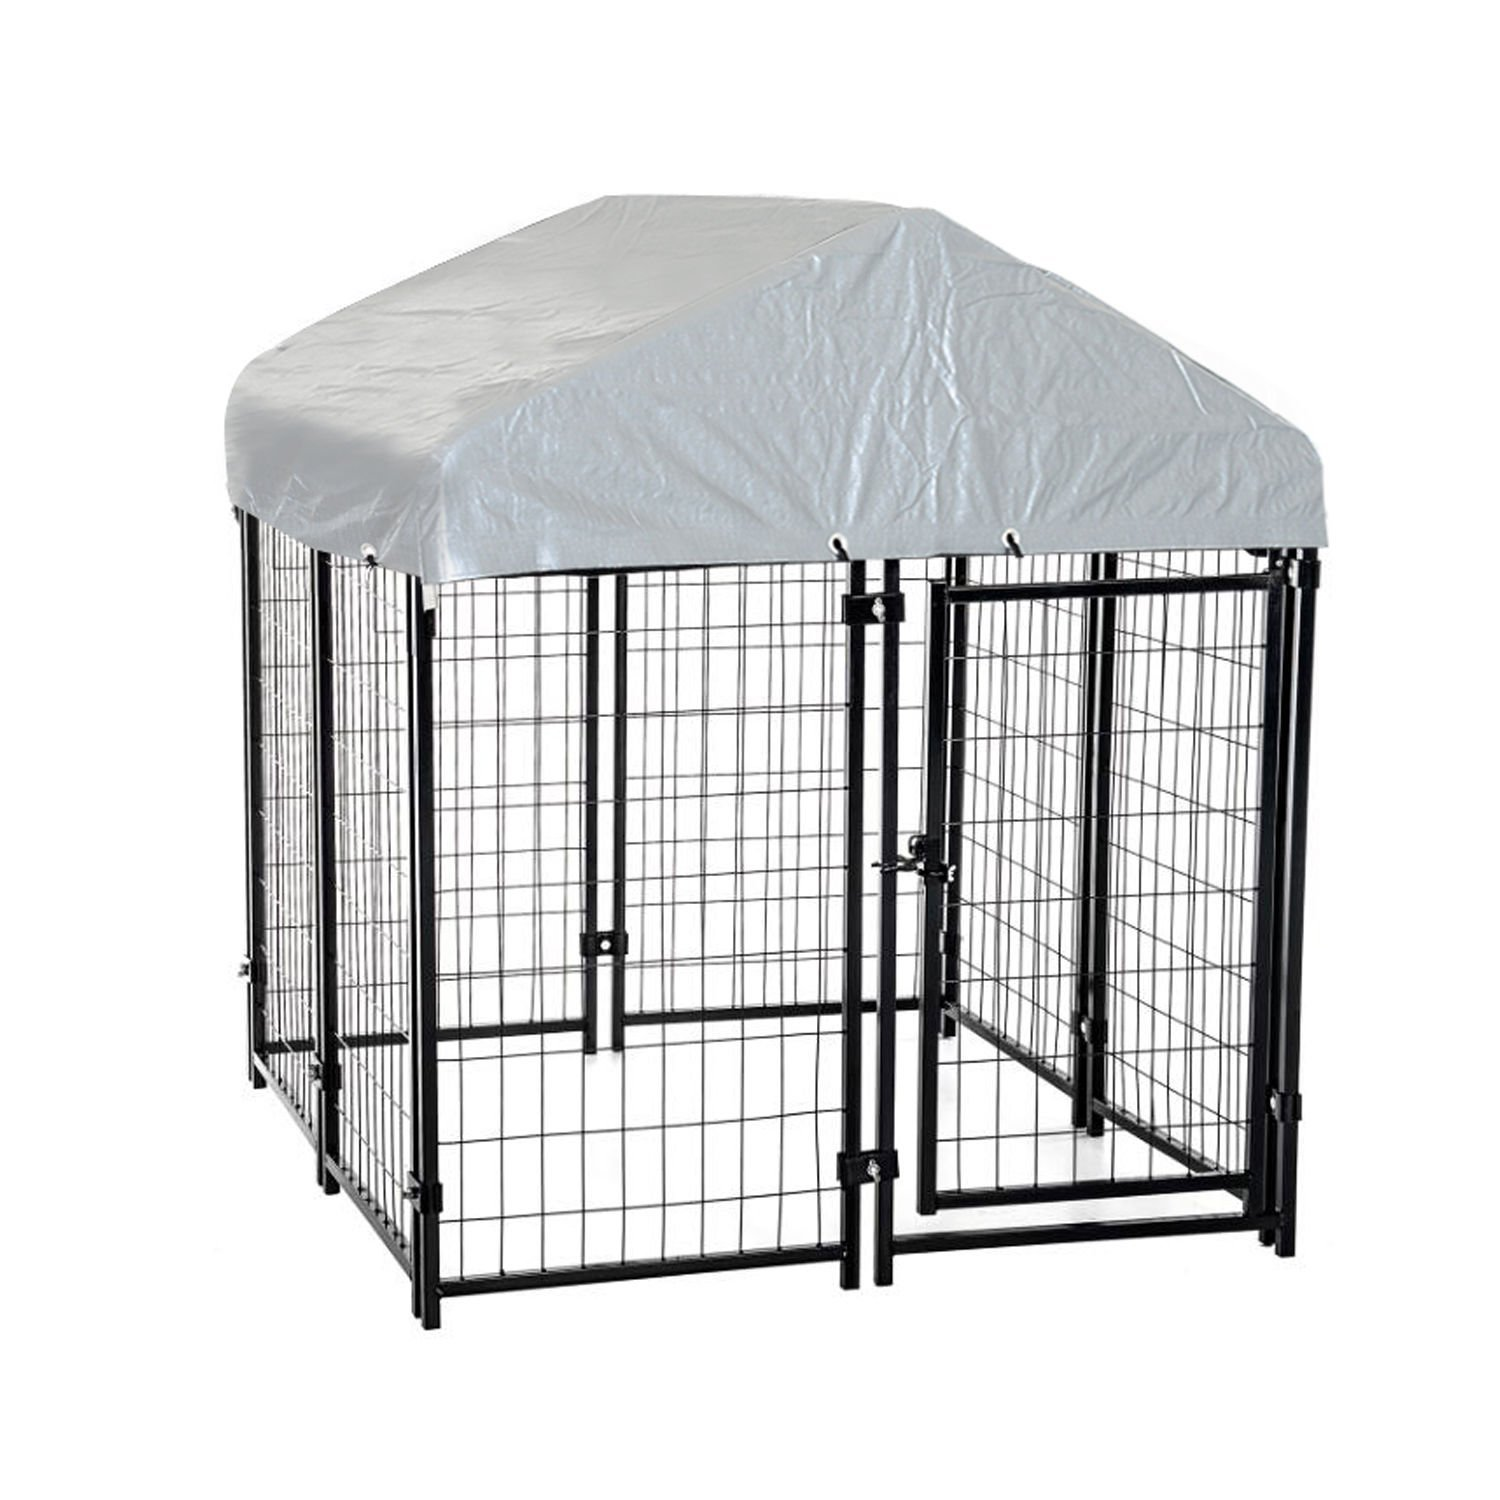 Best Outdoor Dog Kennels to Use Outside - pupsbest.com